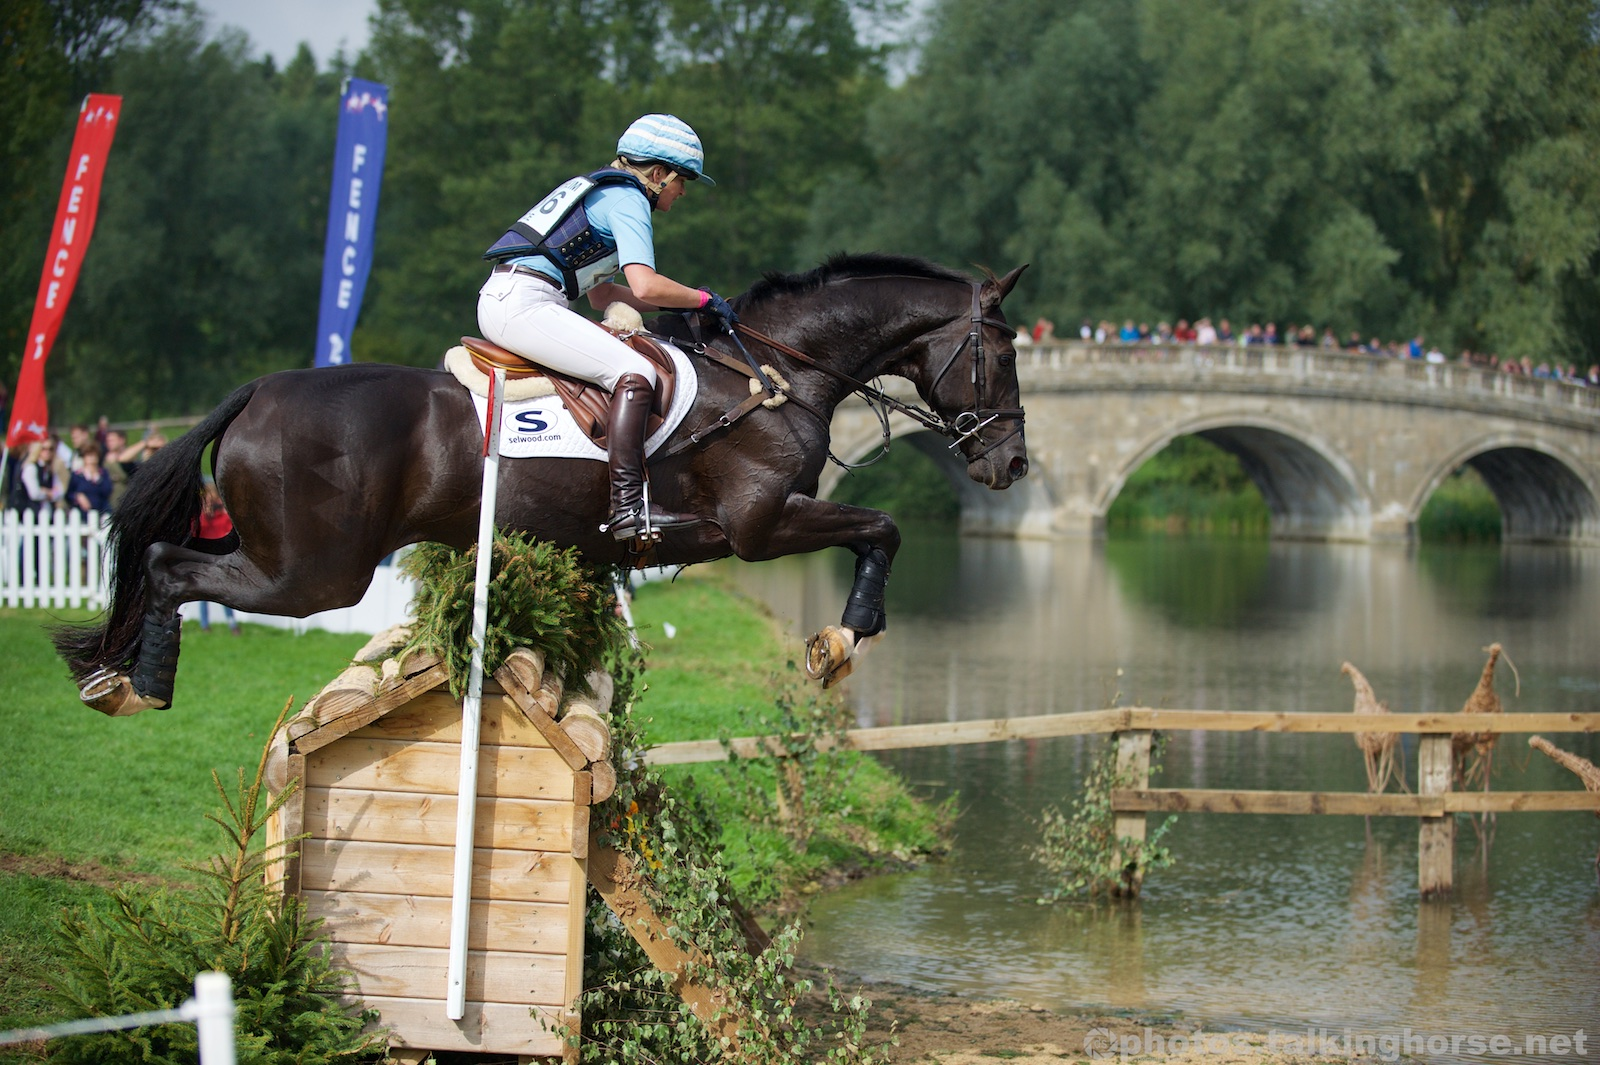 Jonelle Price & Cloud Dancer - Winners of the Blenheim Horse Trials CIC*** 2015